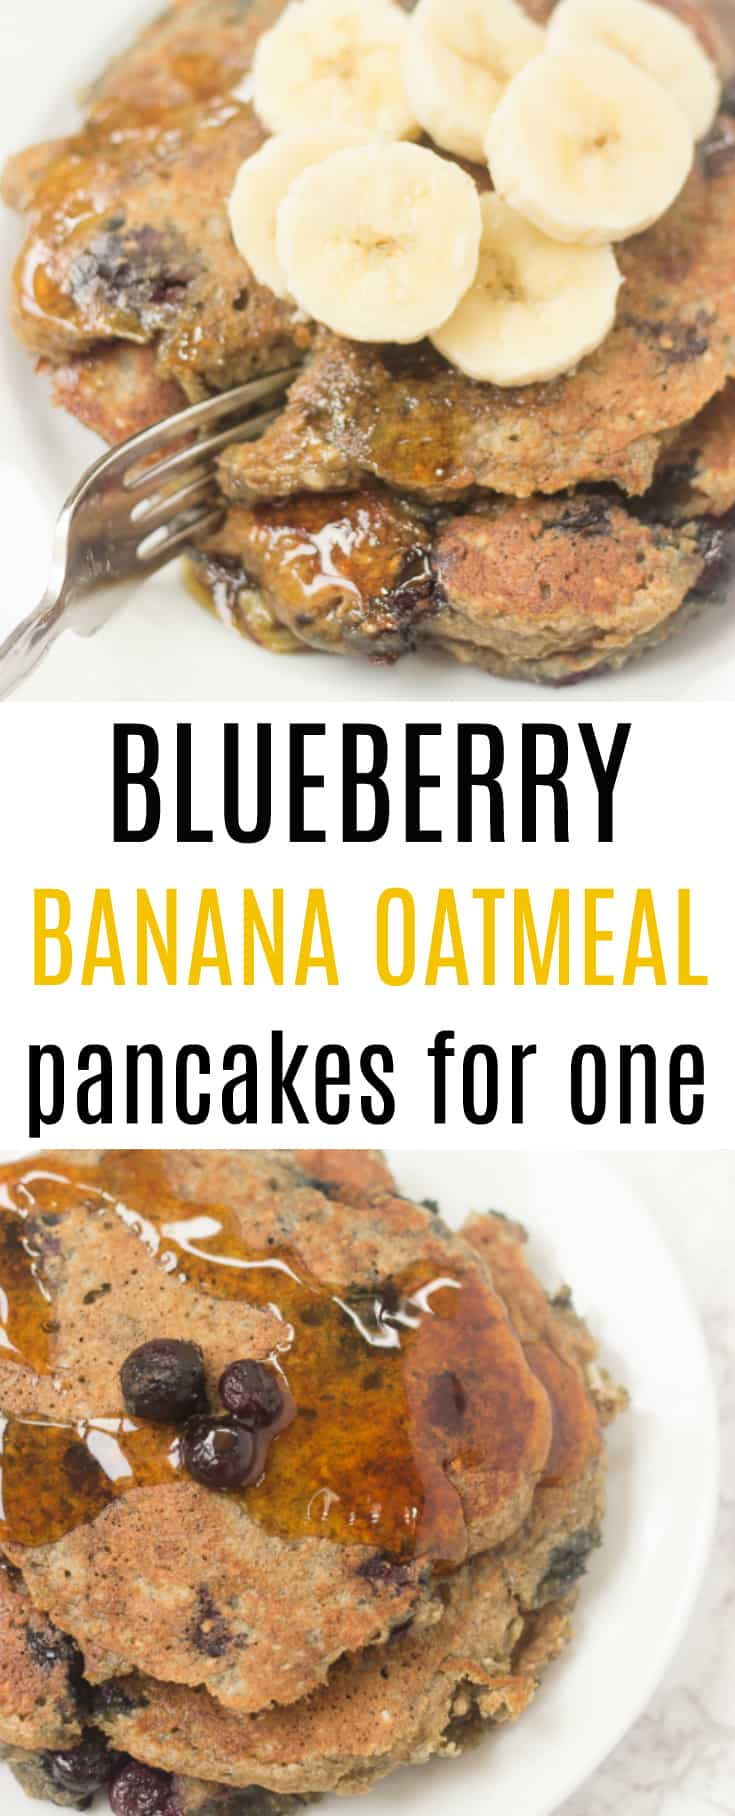 These single-serving blueberry banana oat pancakes are the perfect healthy breakfast!